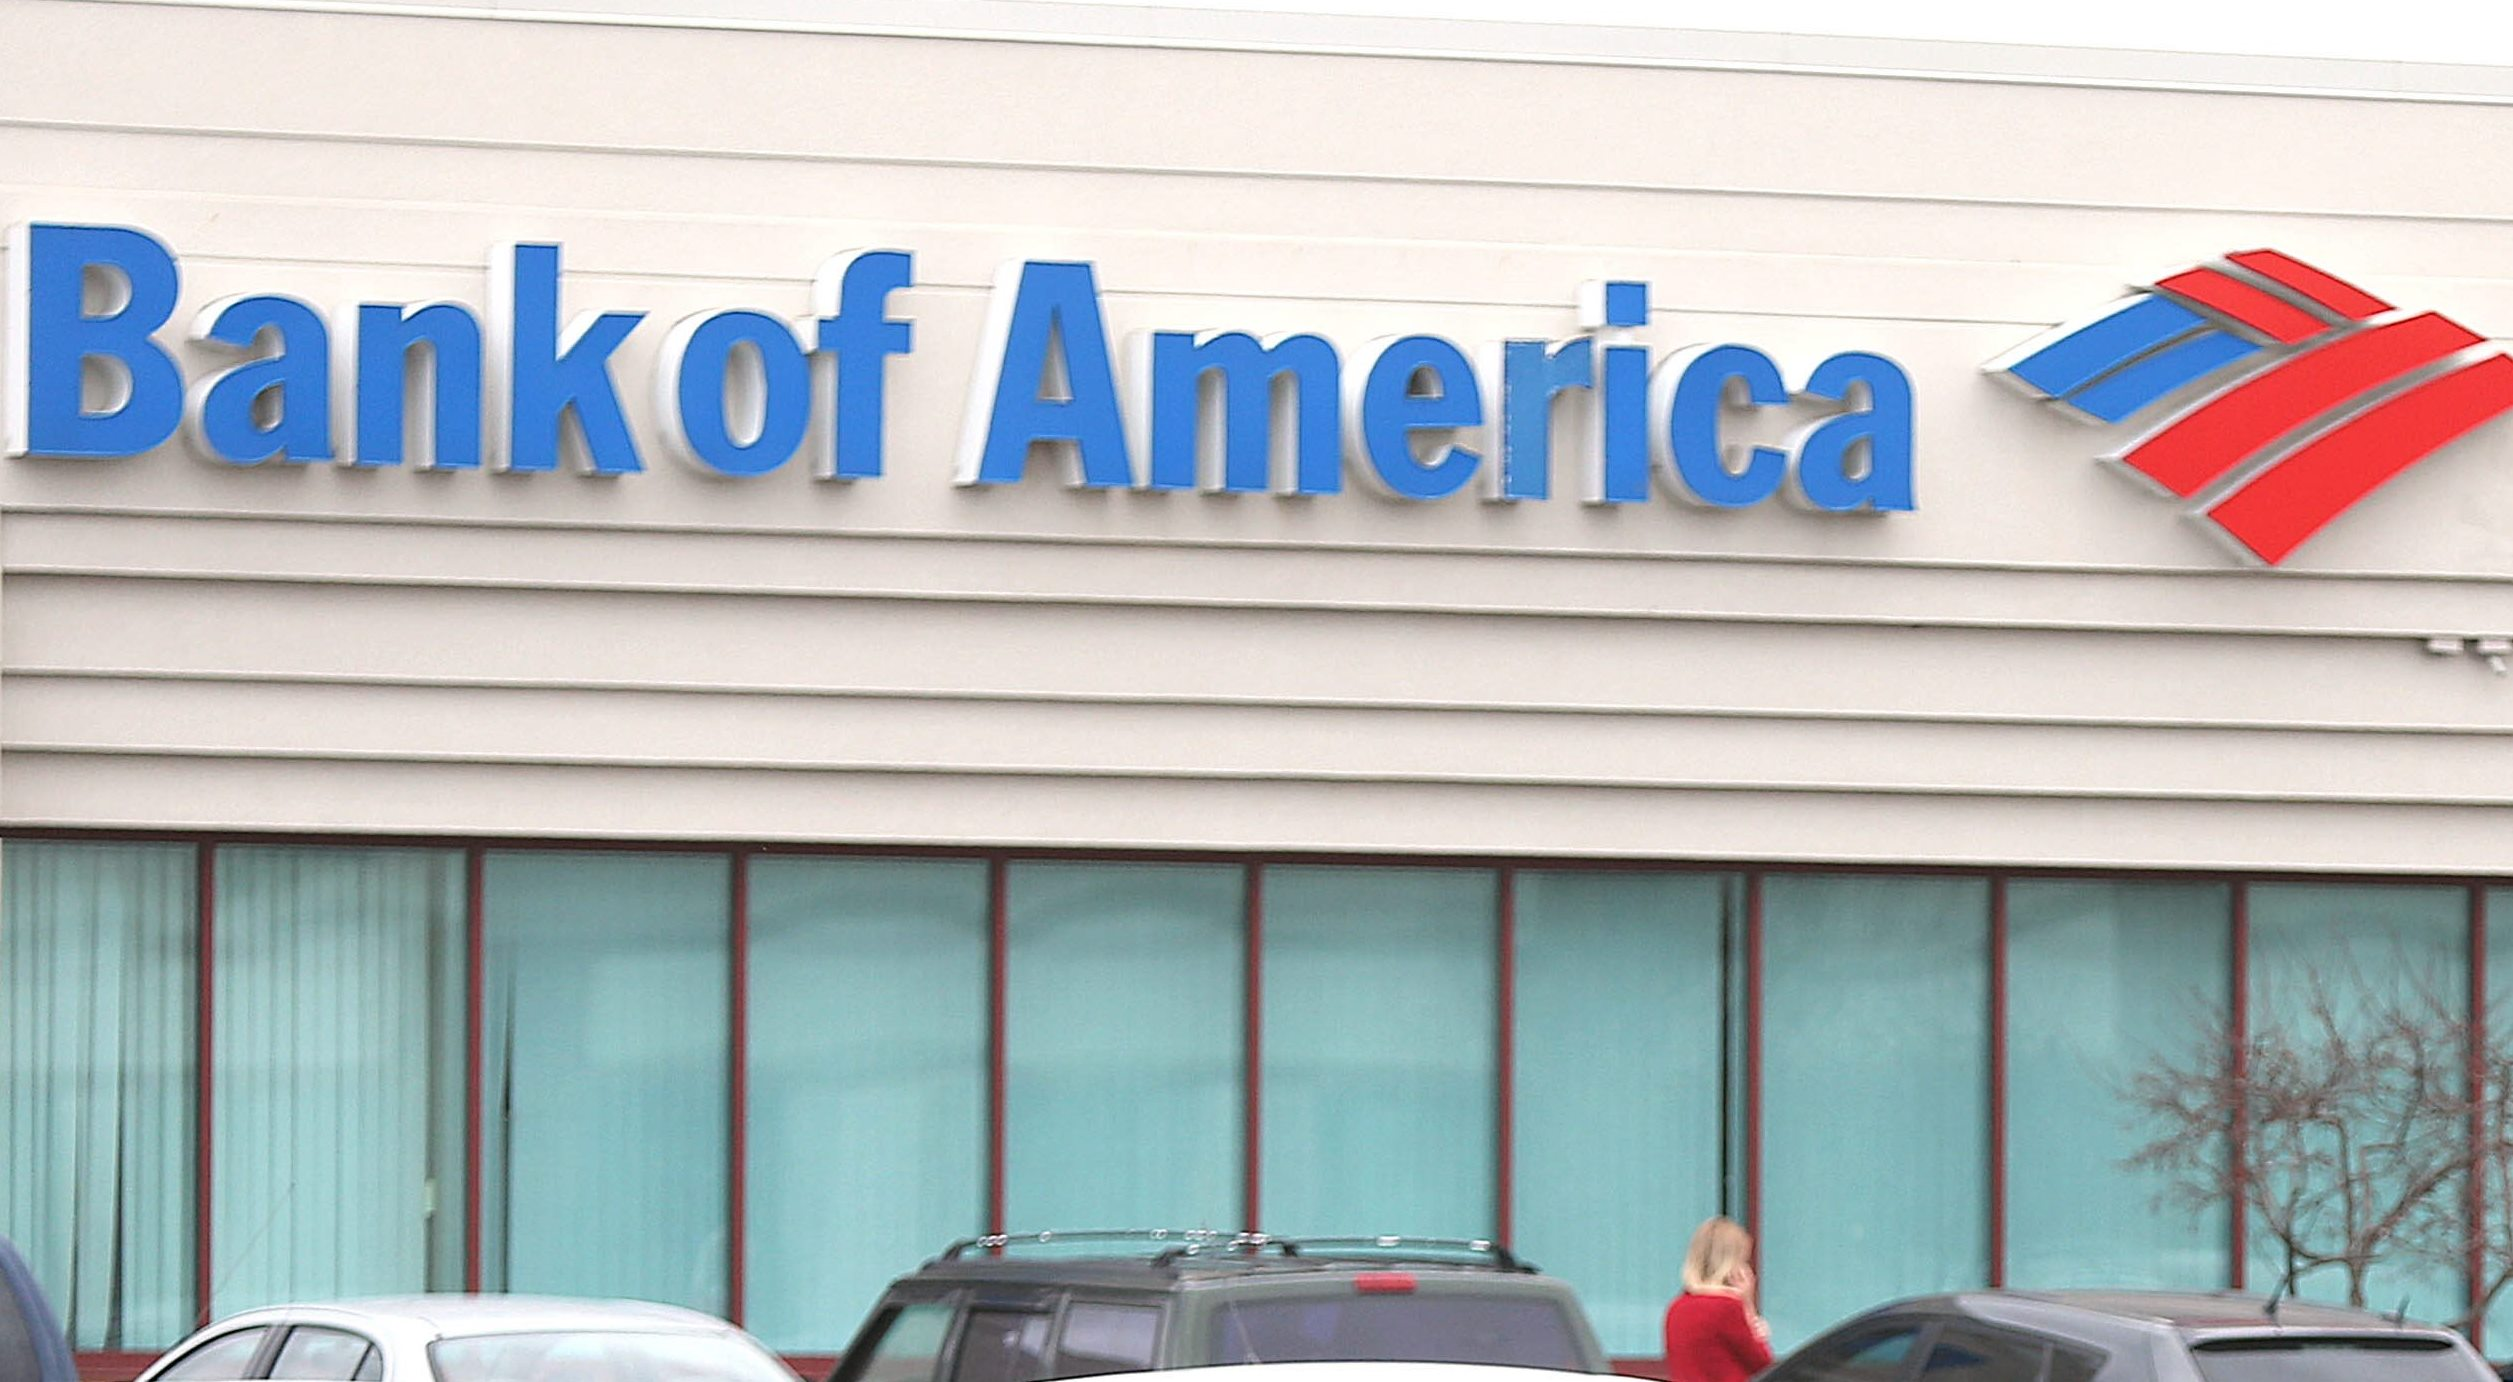 An advocacy group is raising concerns over Bank of America's plan to shut a branch in South Buffalo next month. (News file photo)